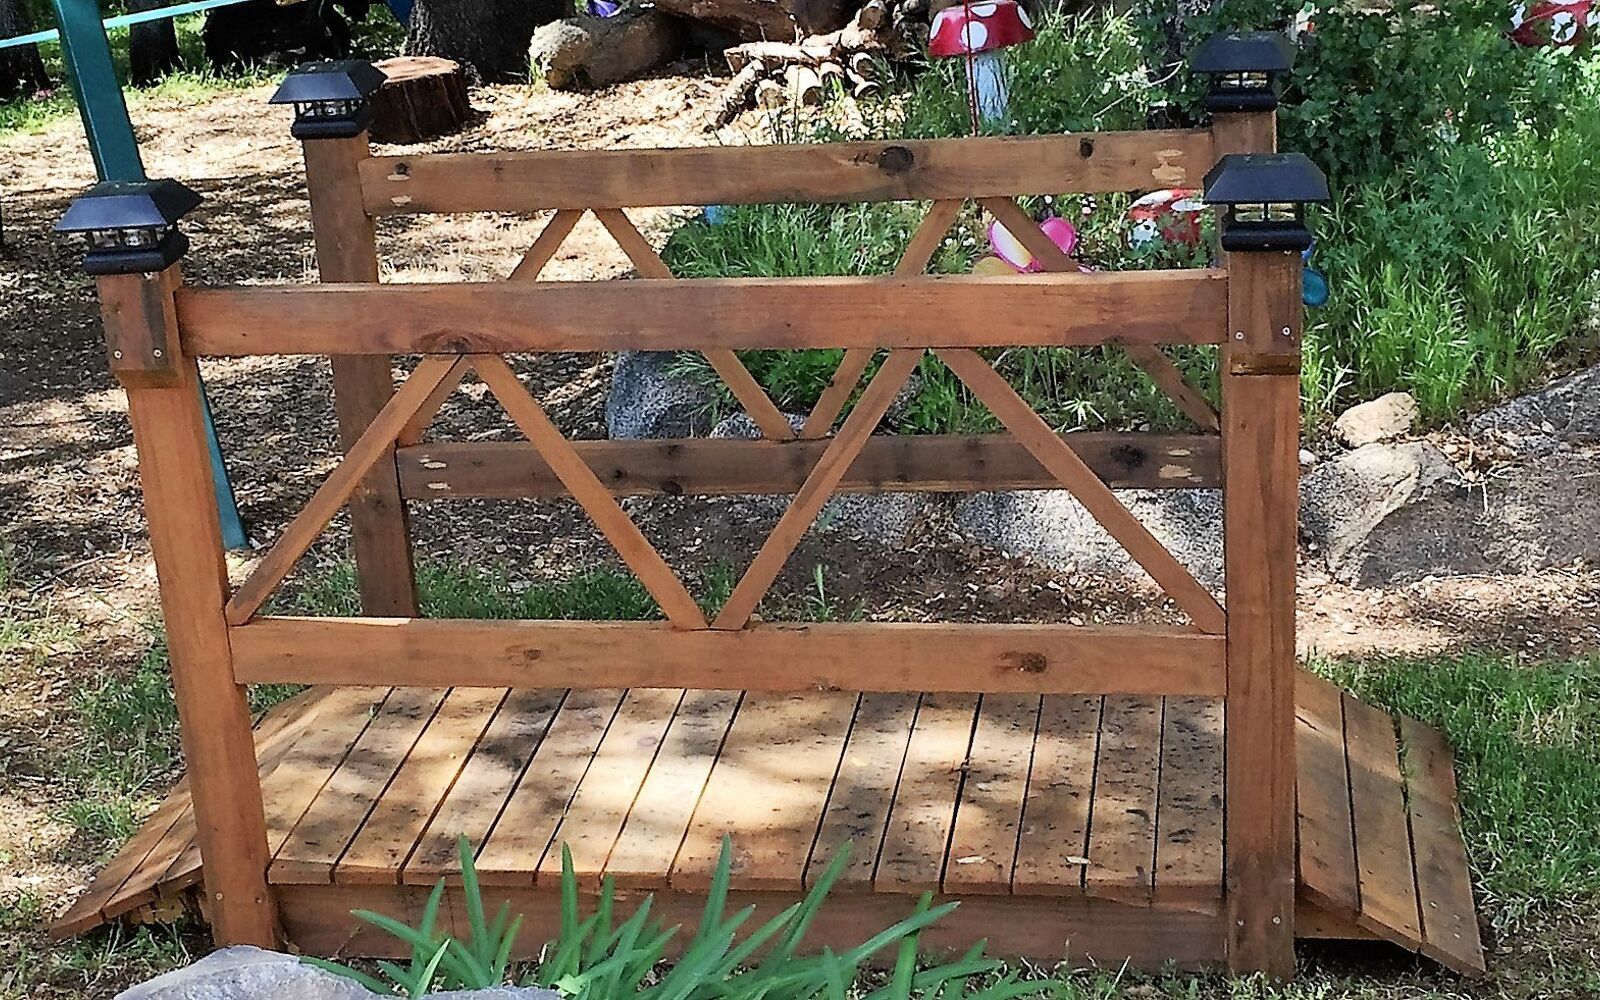 s 30 ways for you to style your garden, Add A Wooden Bridge To Your Nursery